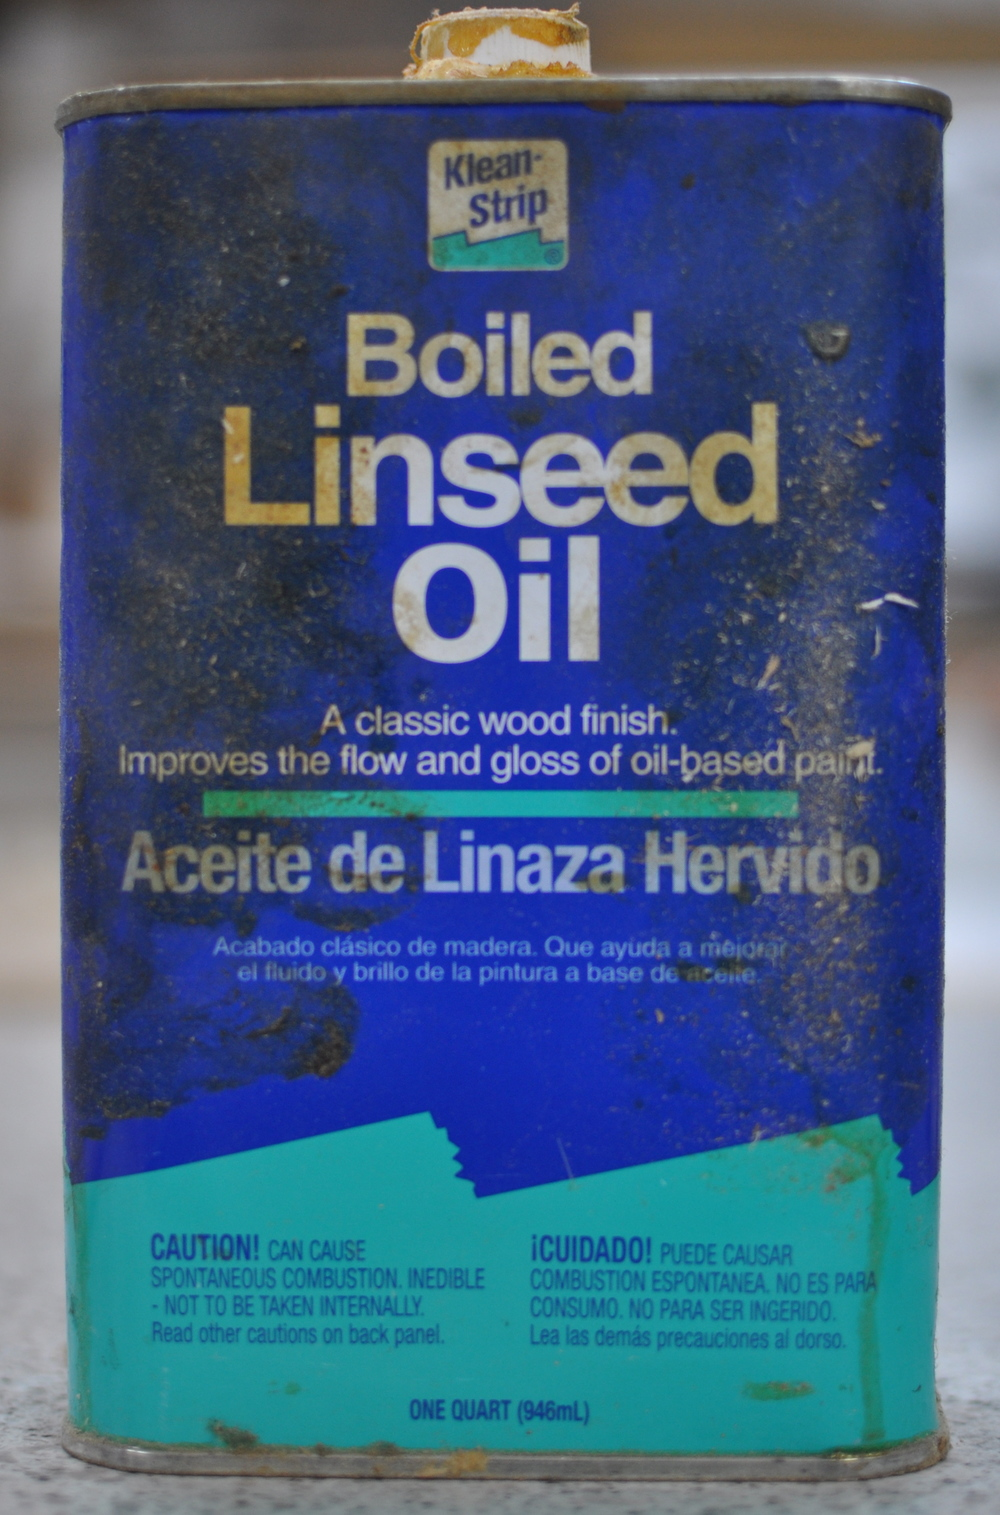 Boiled Linseed Oil is among my favorite finishes